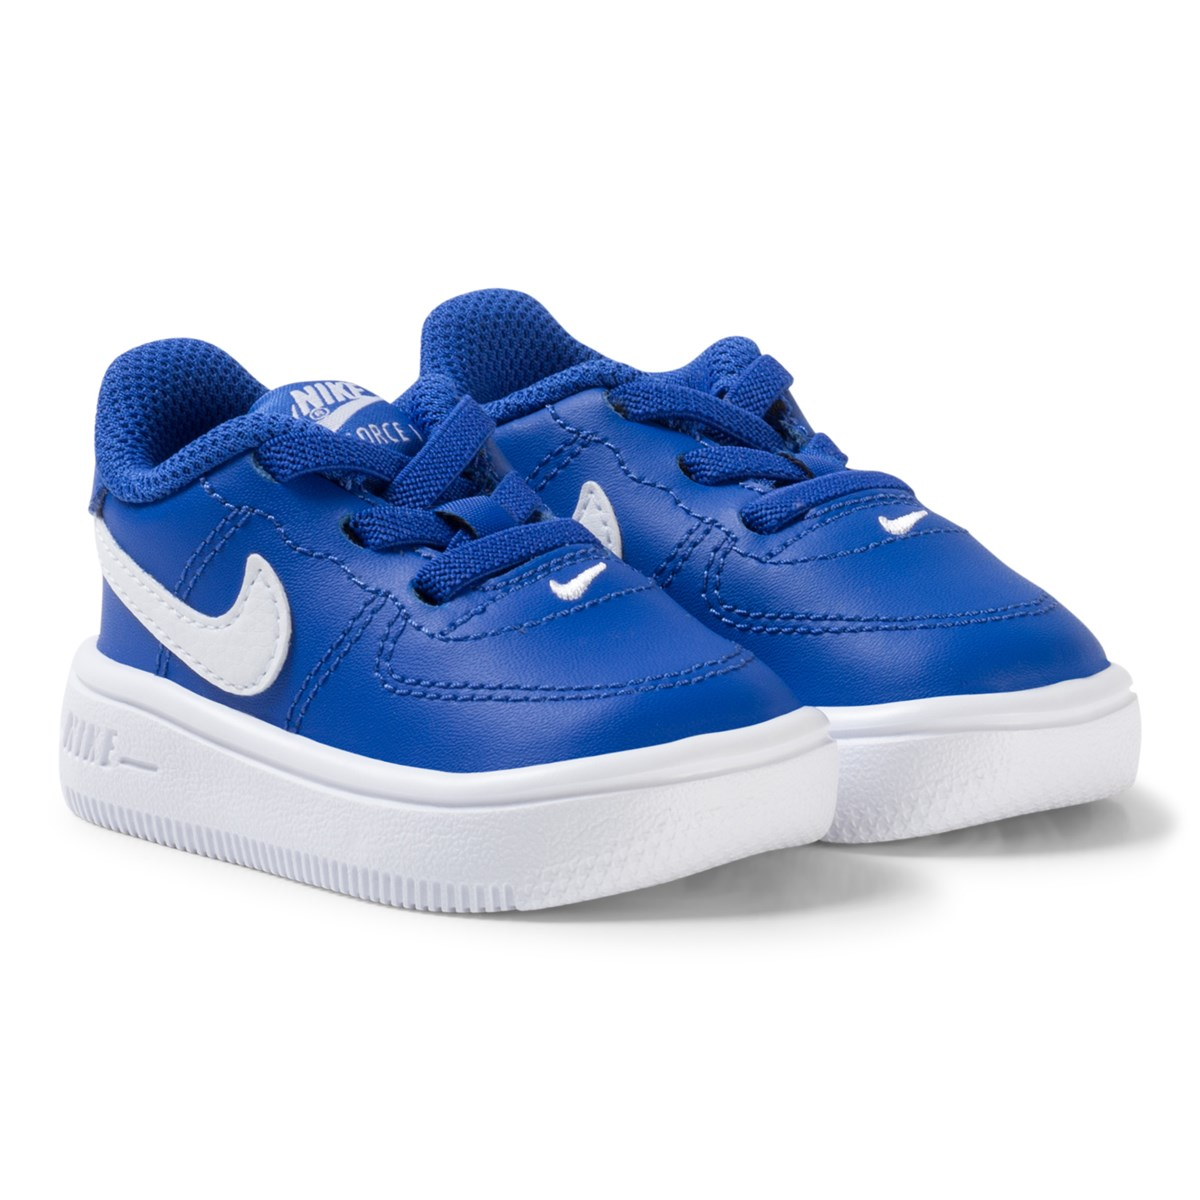 size 40 53514 7d2b7 air force 1 infant sneakers blå nike